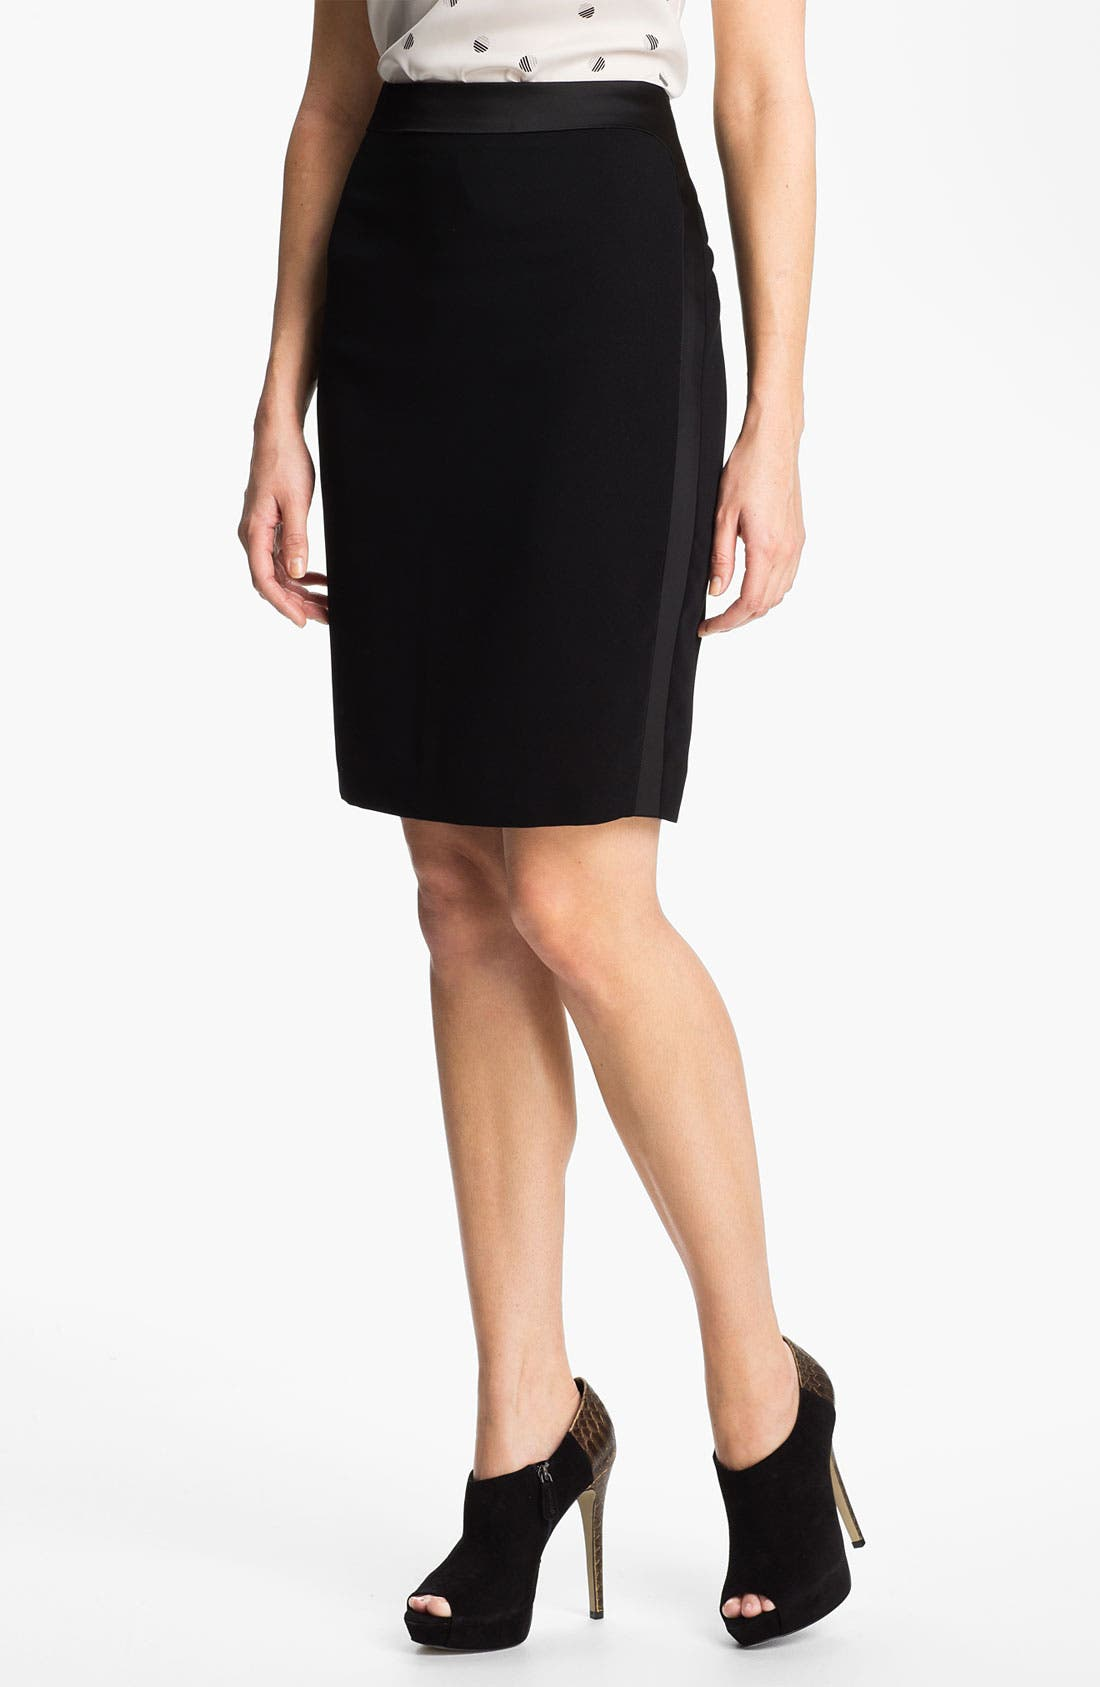 Alternate Image 1 Selected - Anne Klein Tuxedo Skirt (Petite)